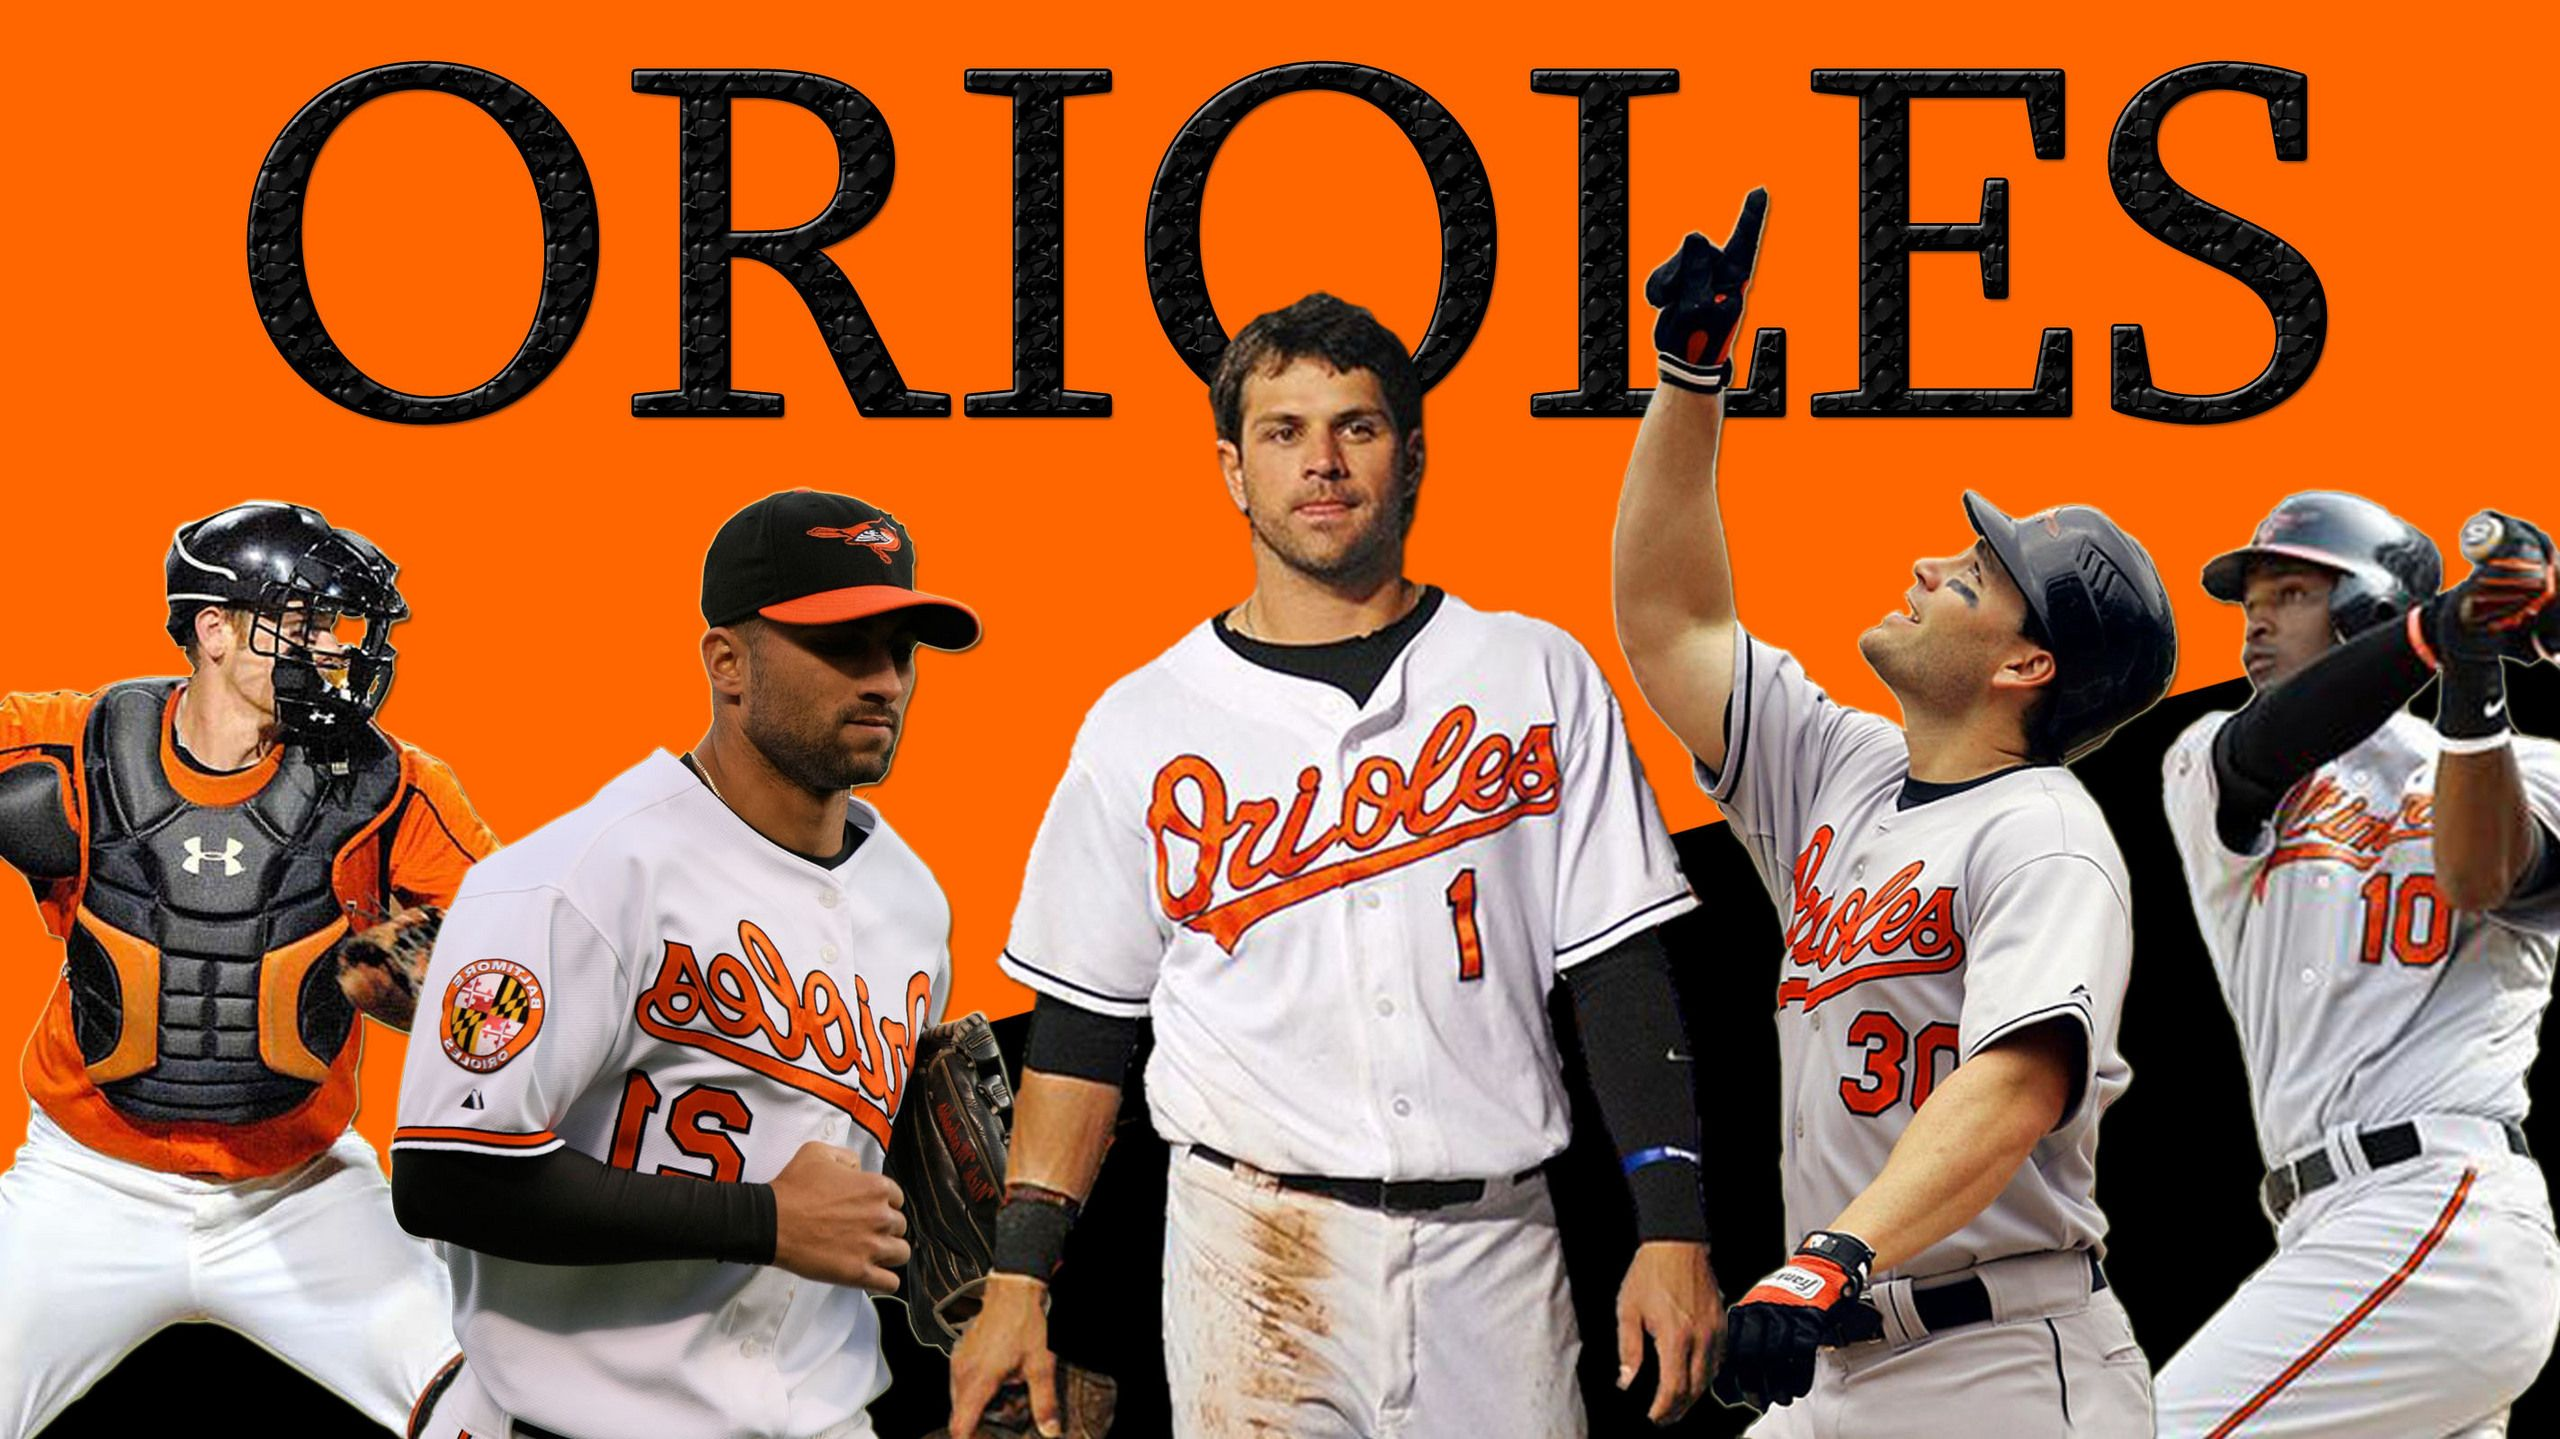 Two days til Opening Day for the O's! | Go, Orioles ...